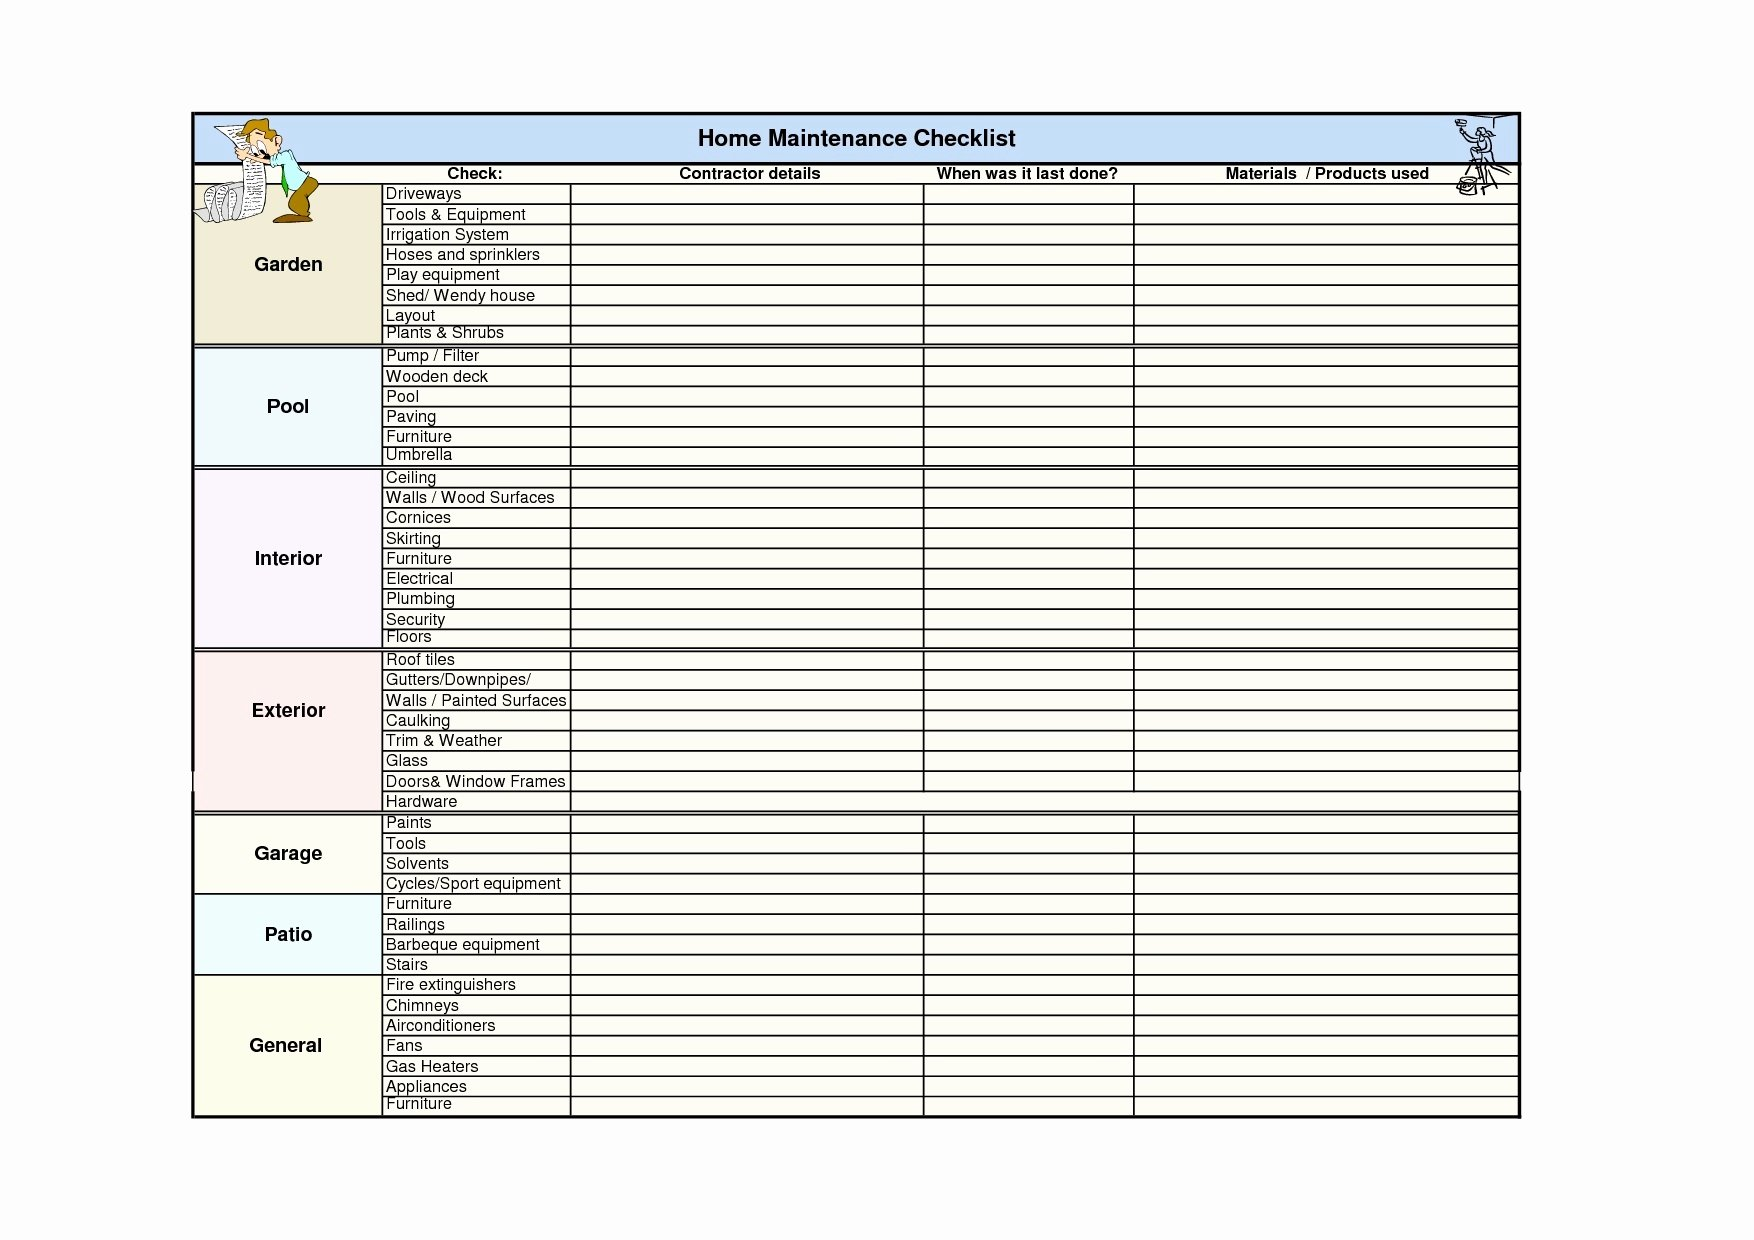 Home Maintenance Schedule Spreadsheet Awesome Spreadsheet Template Page 413 Las Vegas Spreadsheet Sweepstakes Tracking Spreadsheet Excel